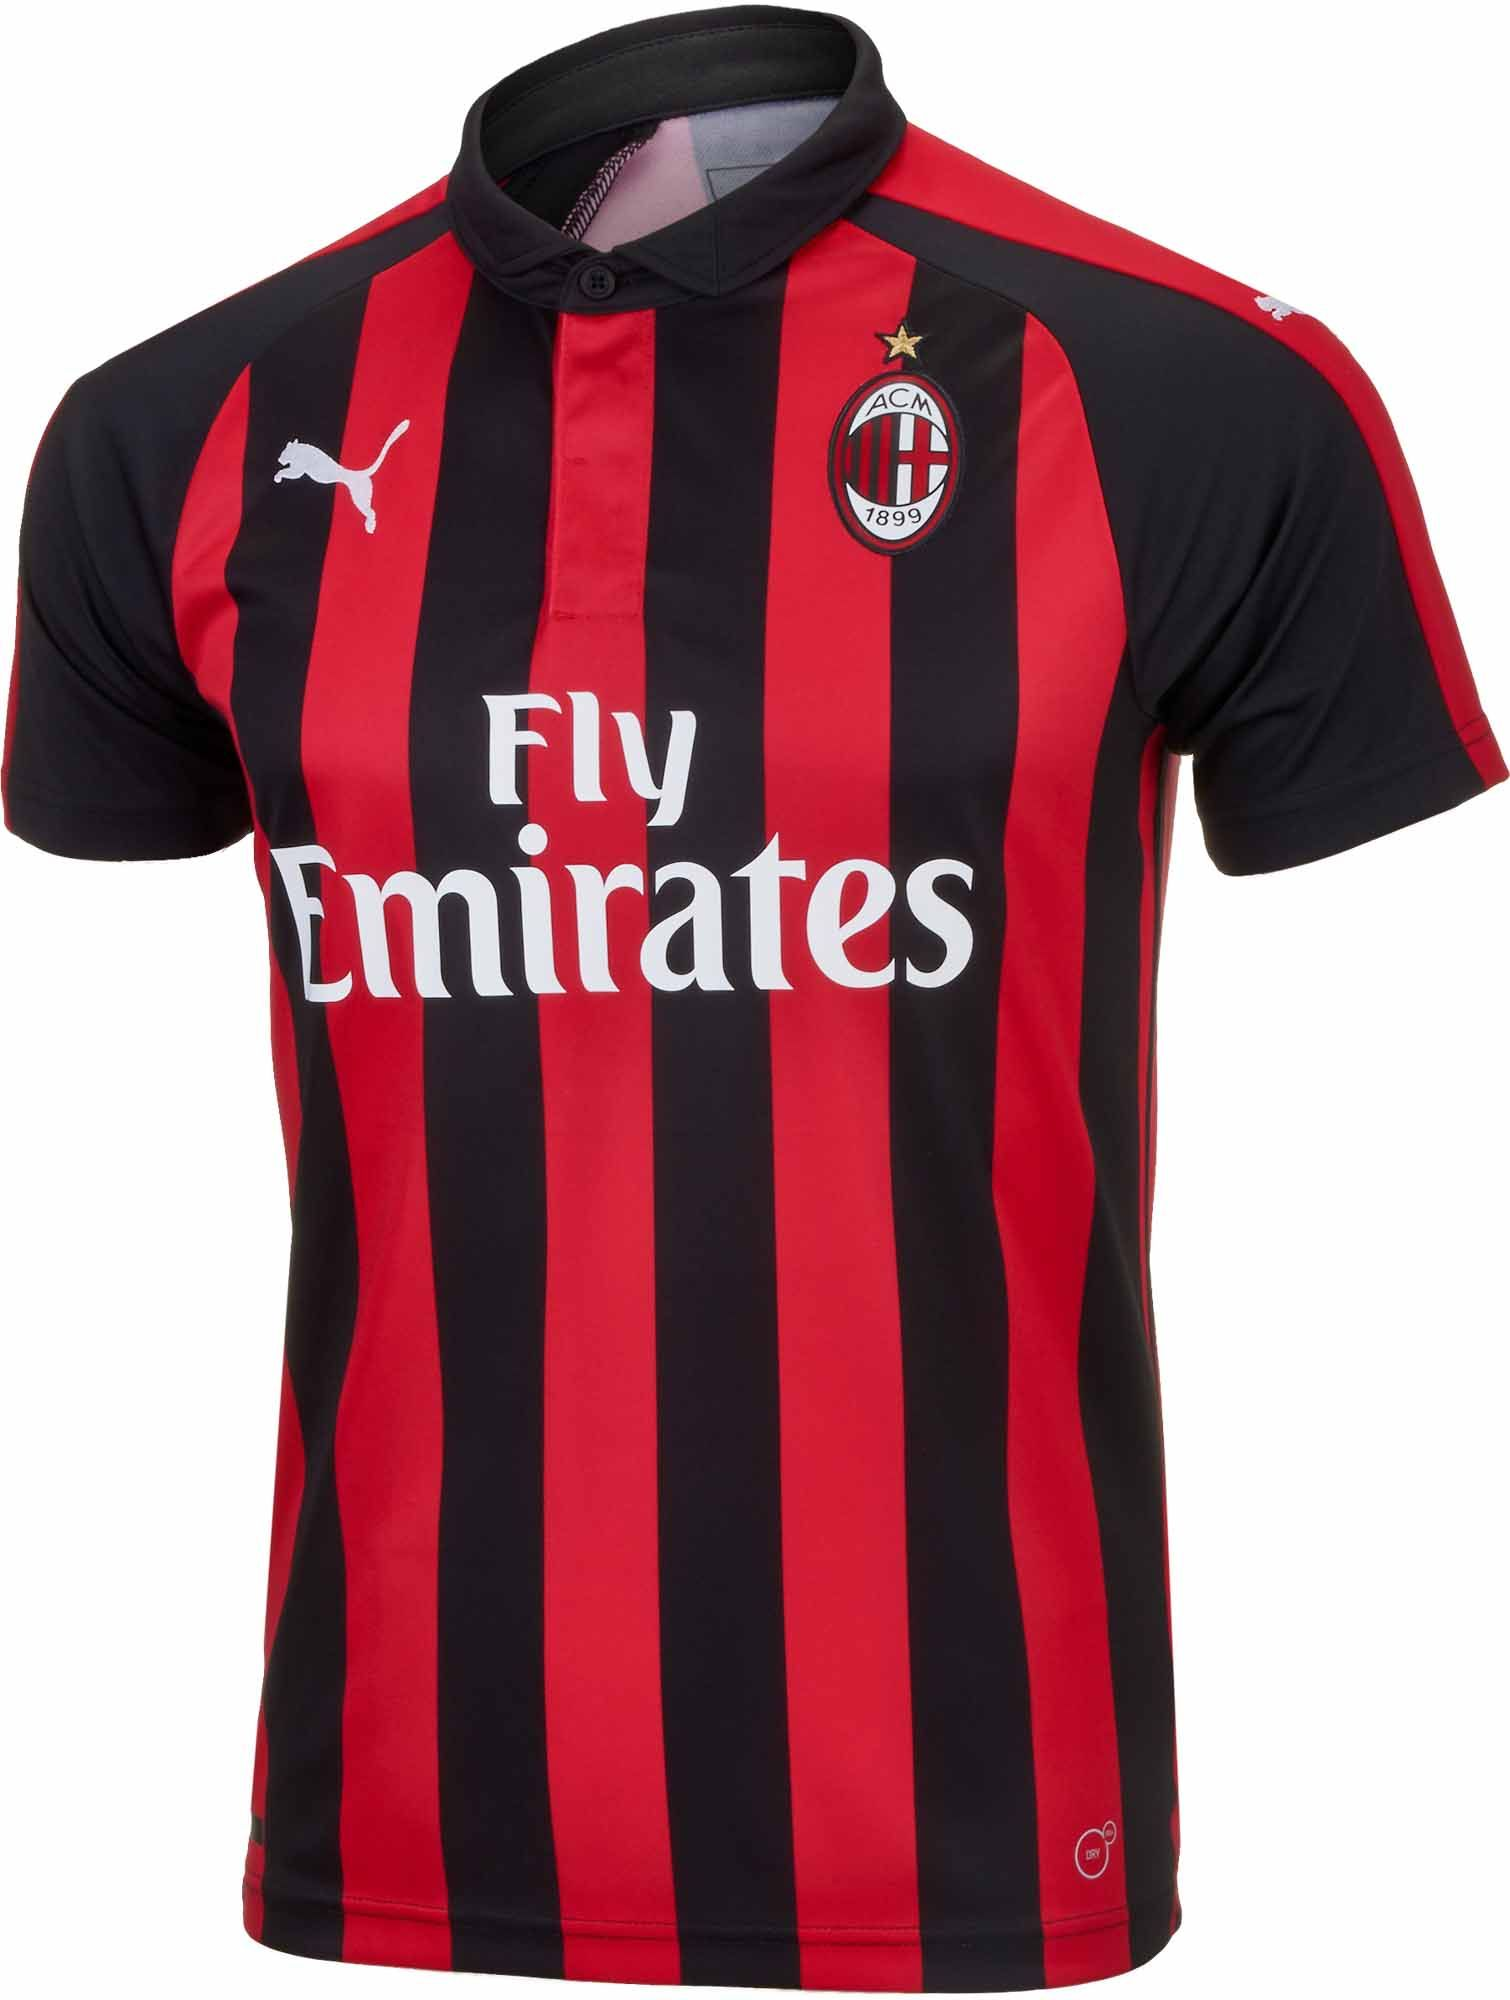 4236a836d 2018 19 adidas AC Milan Home Jersey. Available right now from  www.soccerpro.com